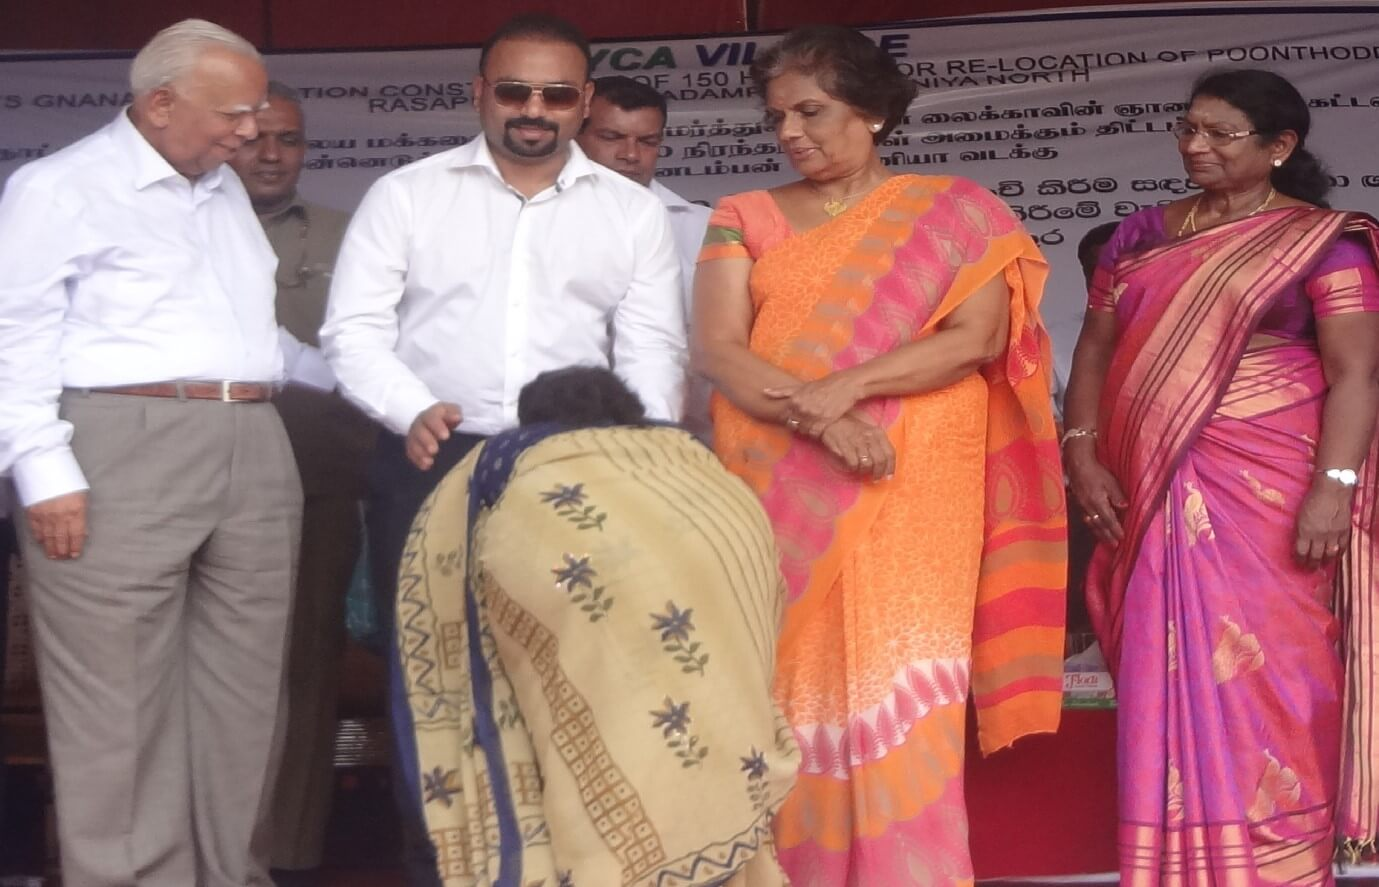 VALUABLE CONTRIBUTION TO RESOLVE WATER CRISES IN THE JAFFNA PENINSULA